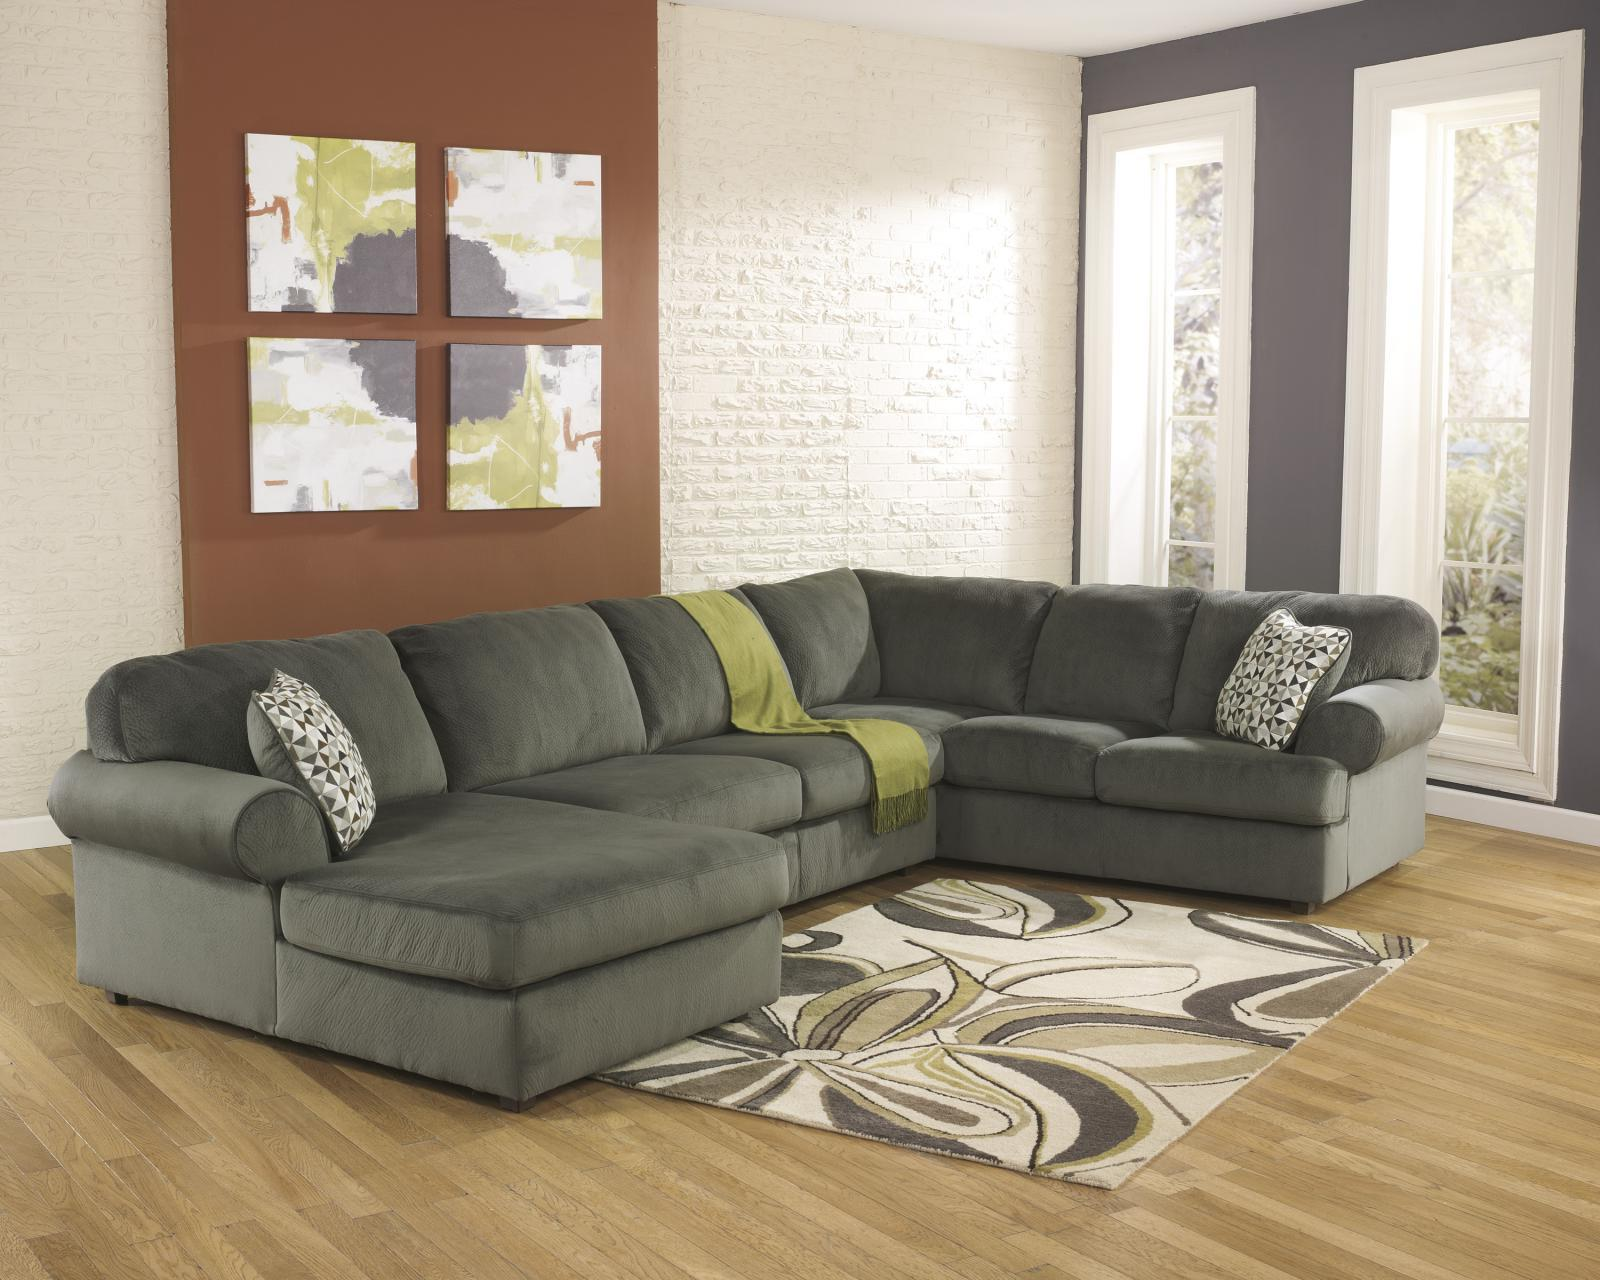 Ashley Jessa Place Living Room Sectional 3pc in Pewter Contemporary Left Facing